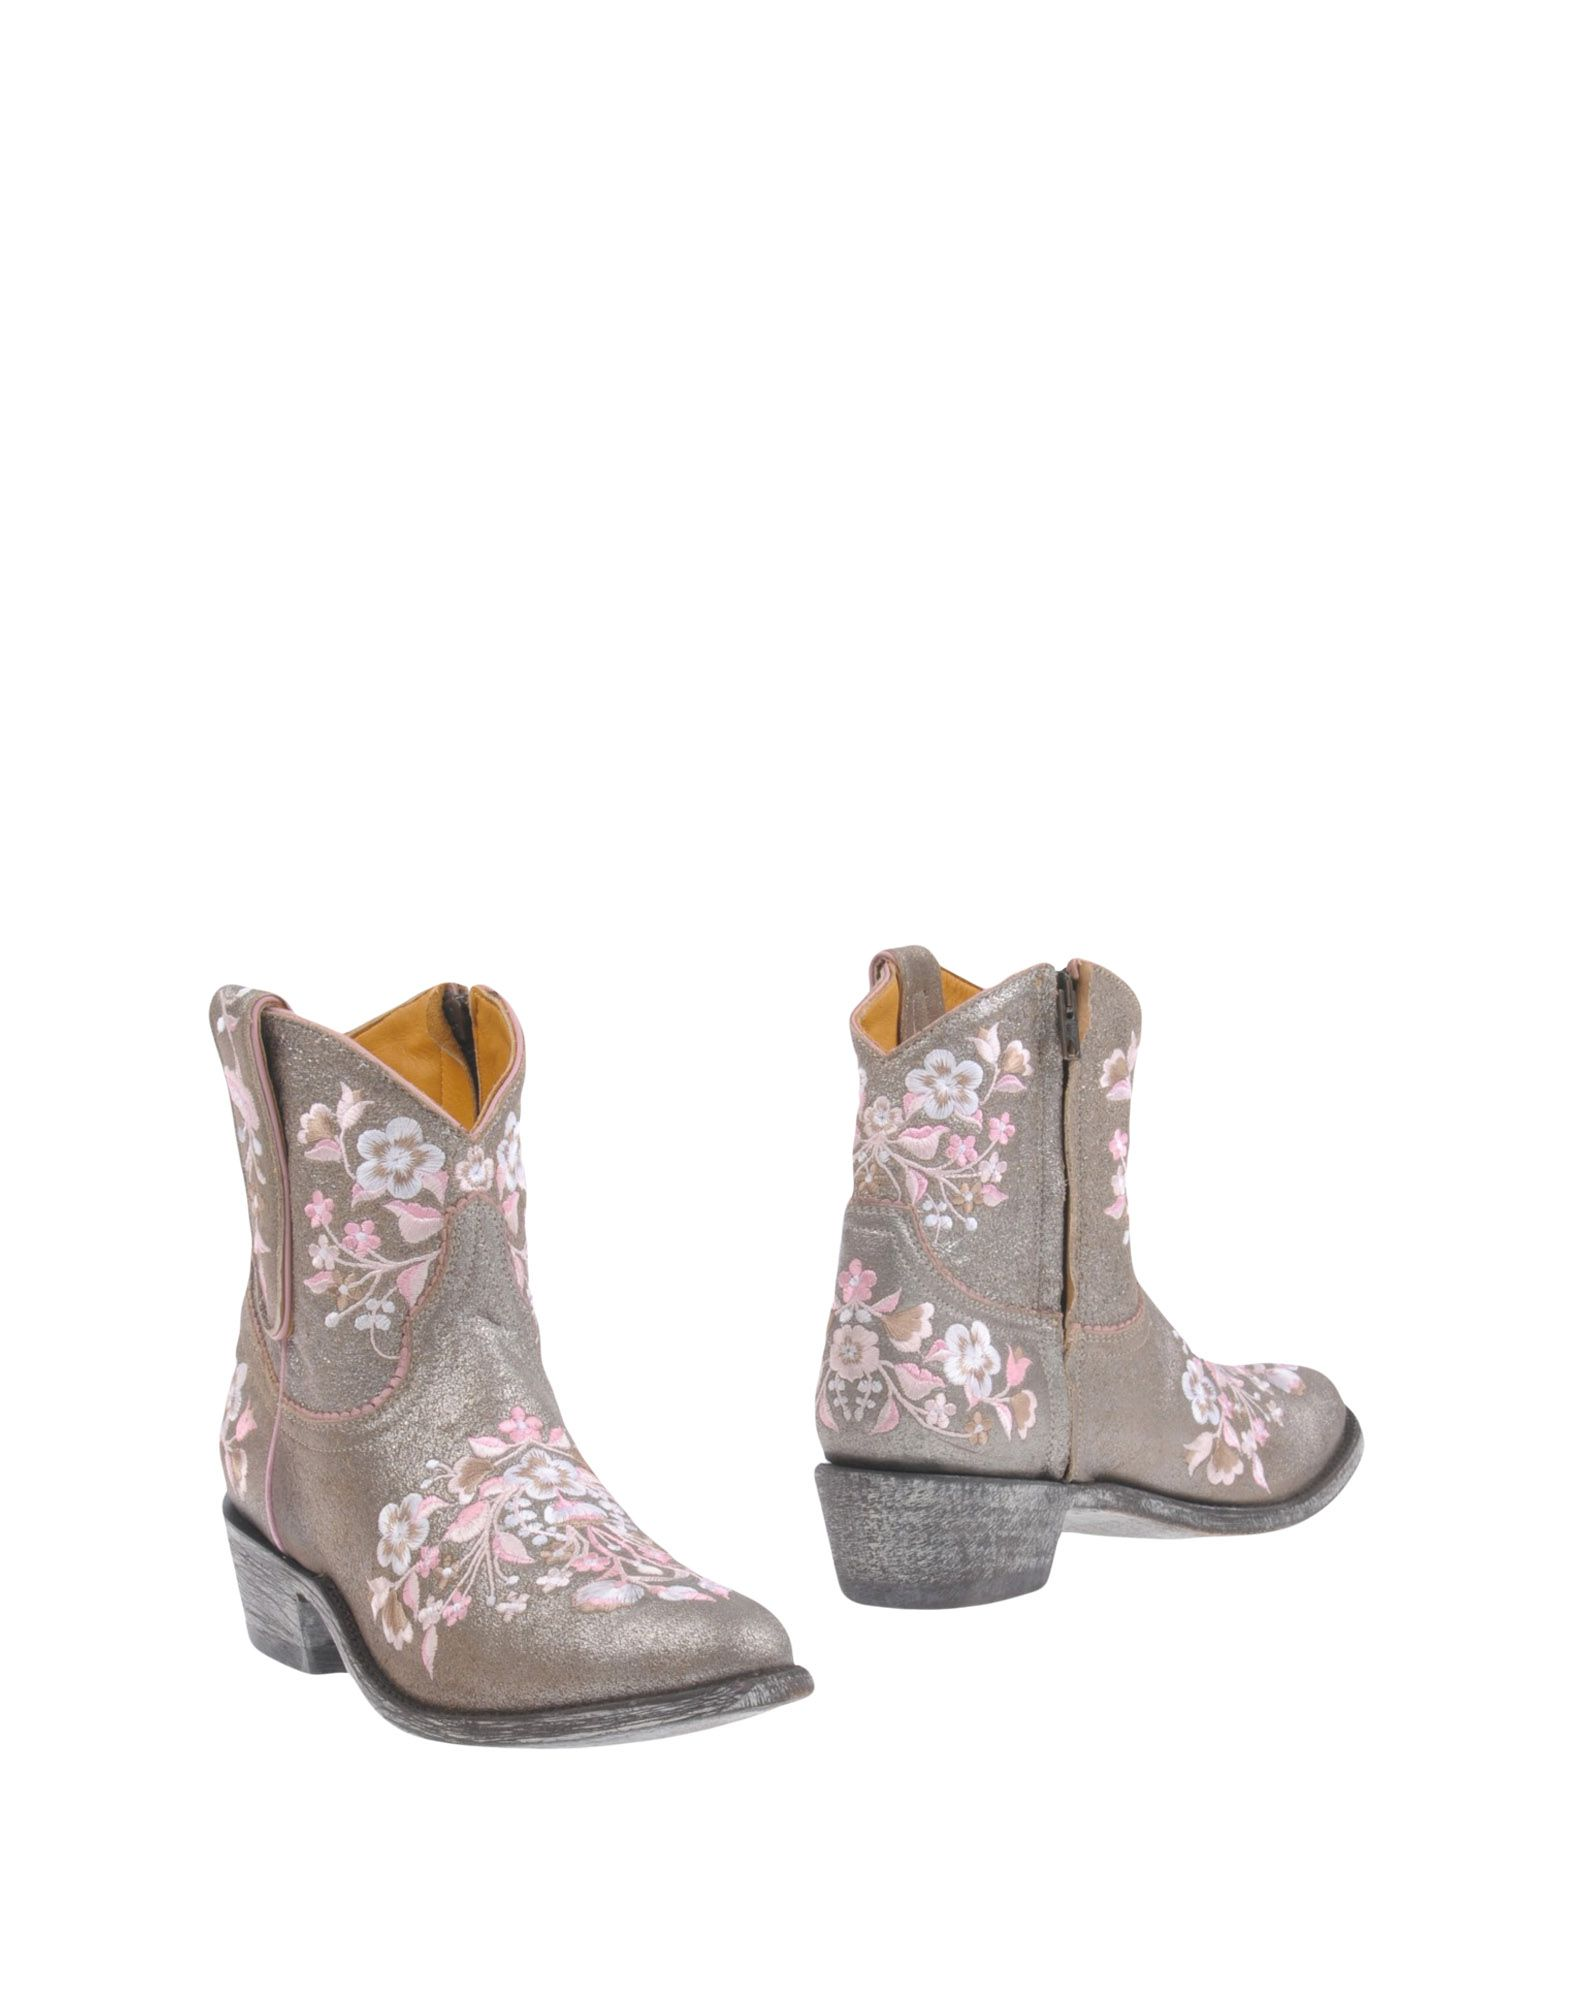 MEXICANA Ankle Boot in Silver